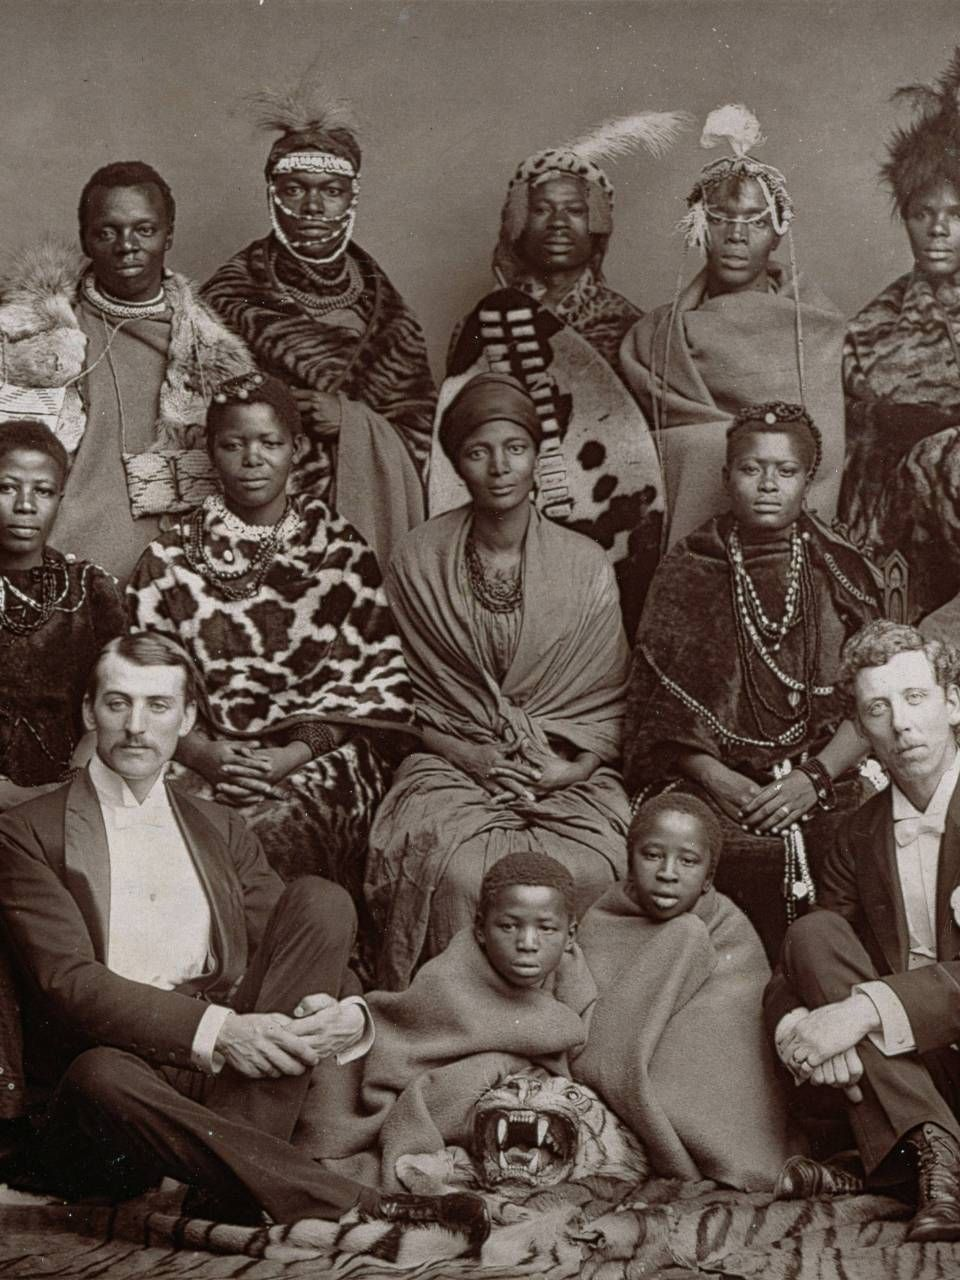 A fabulous group portrait of the African Choir, wearing